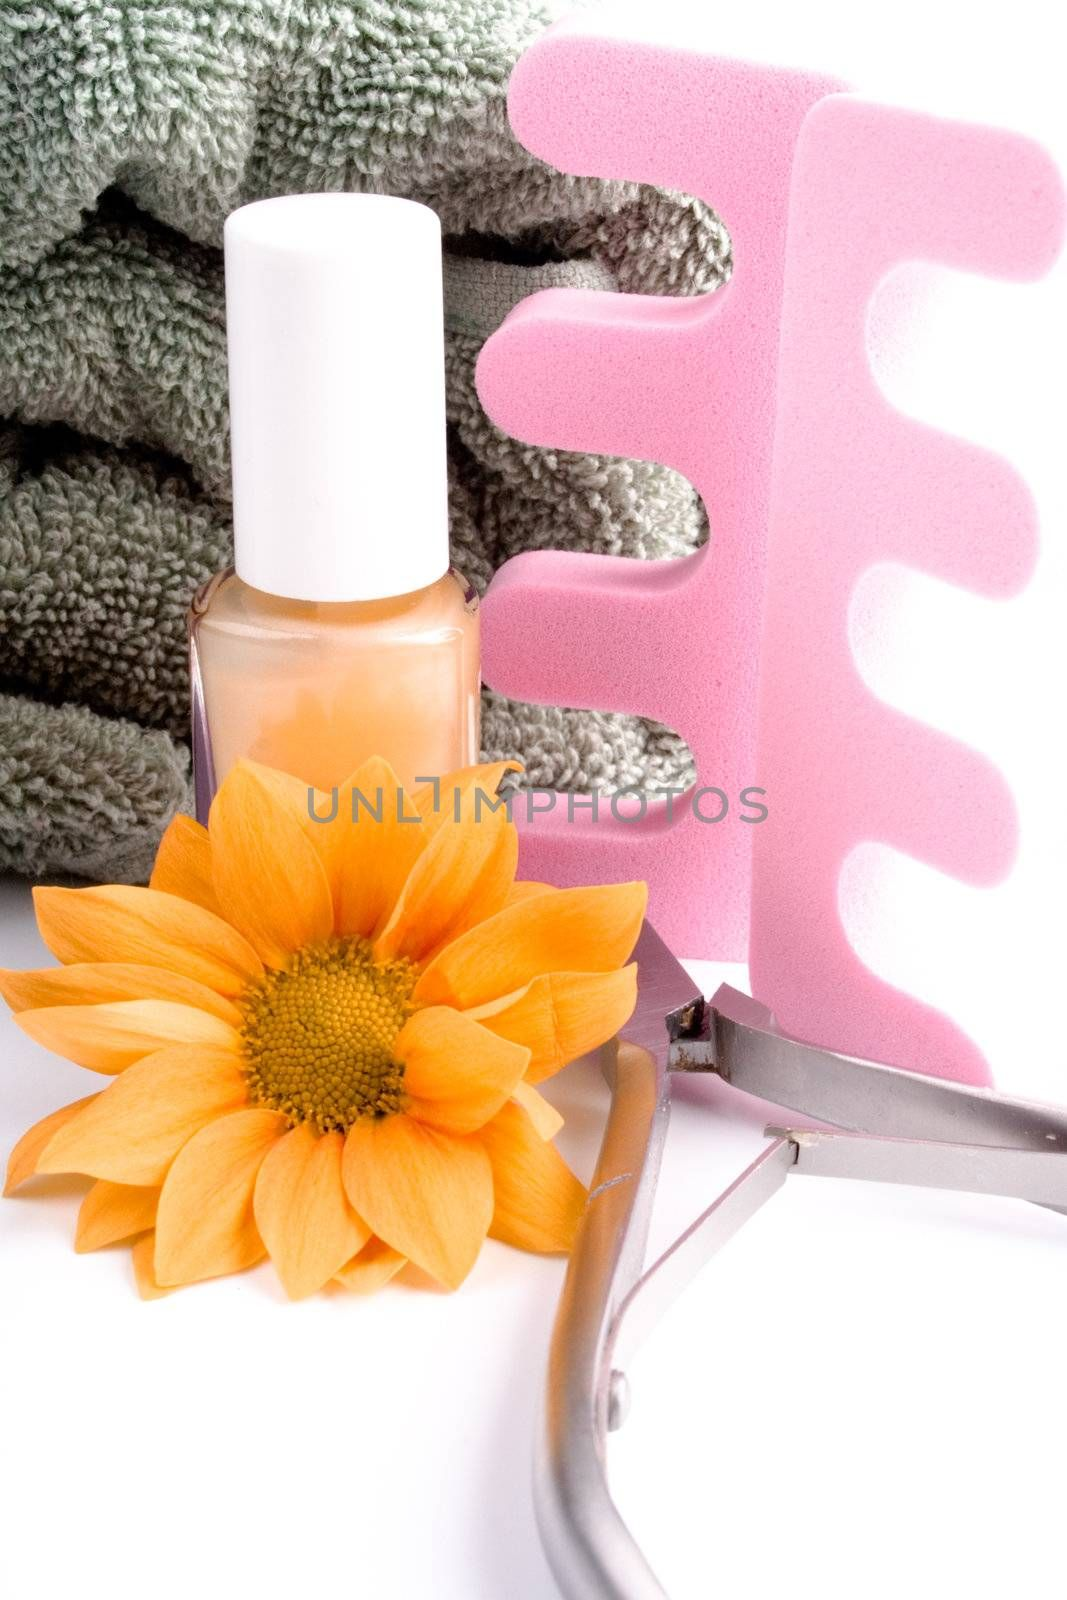 pedicure beauty set, flower and towel on white background